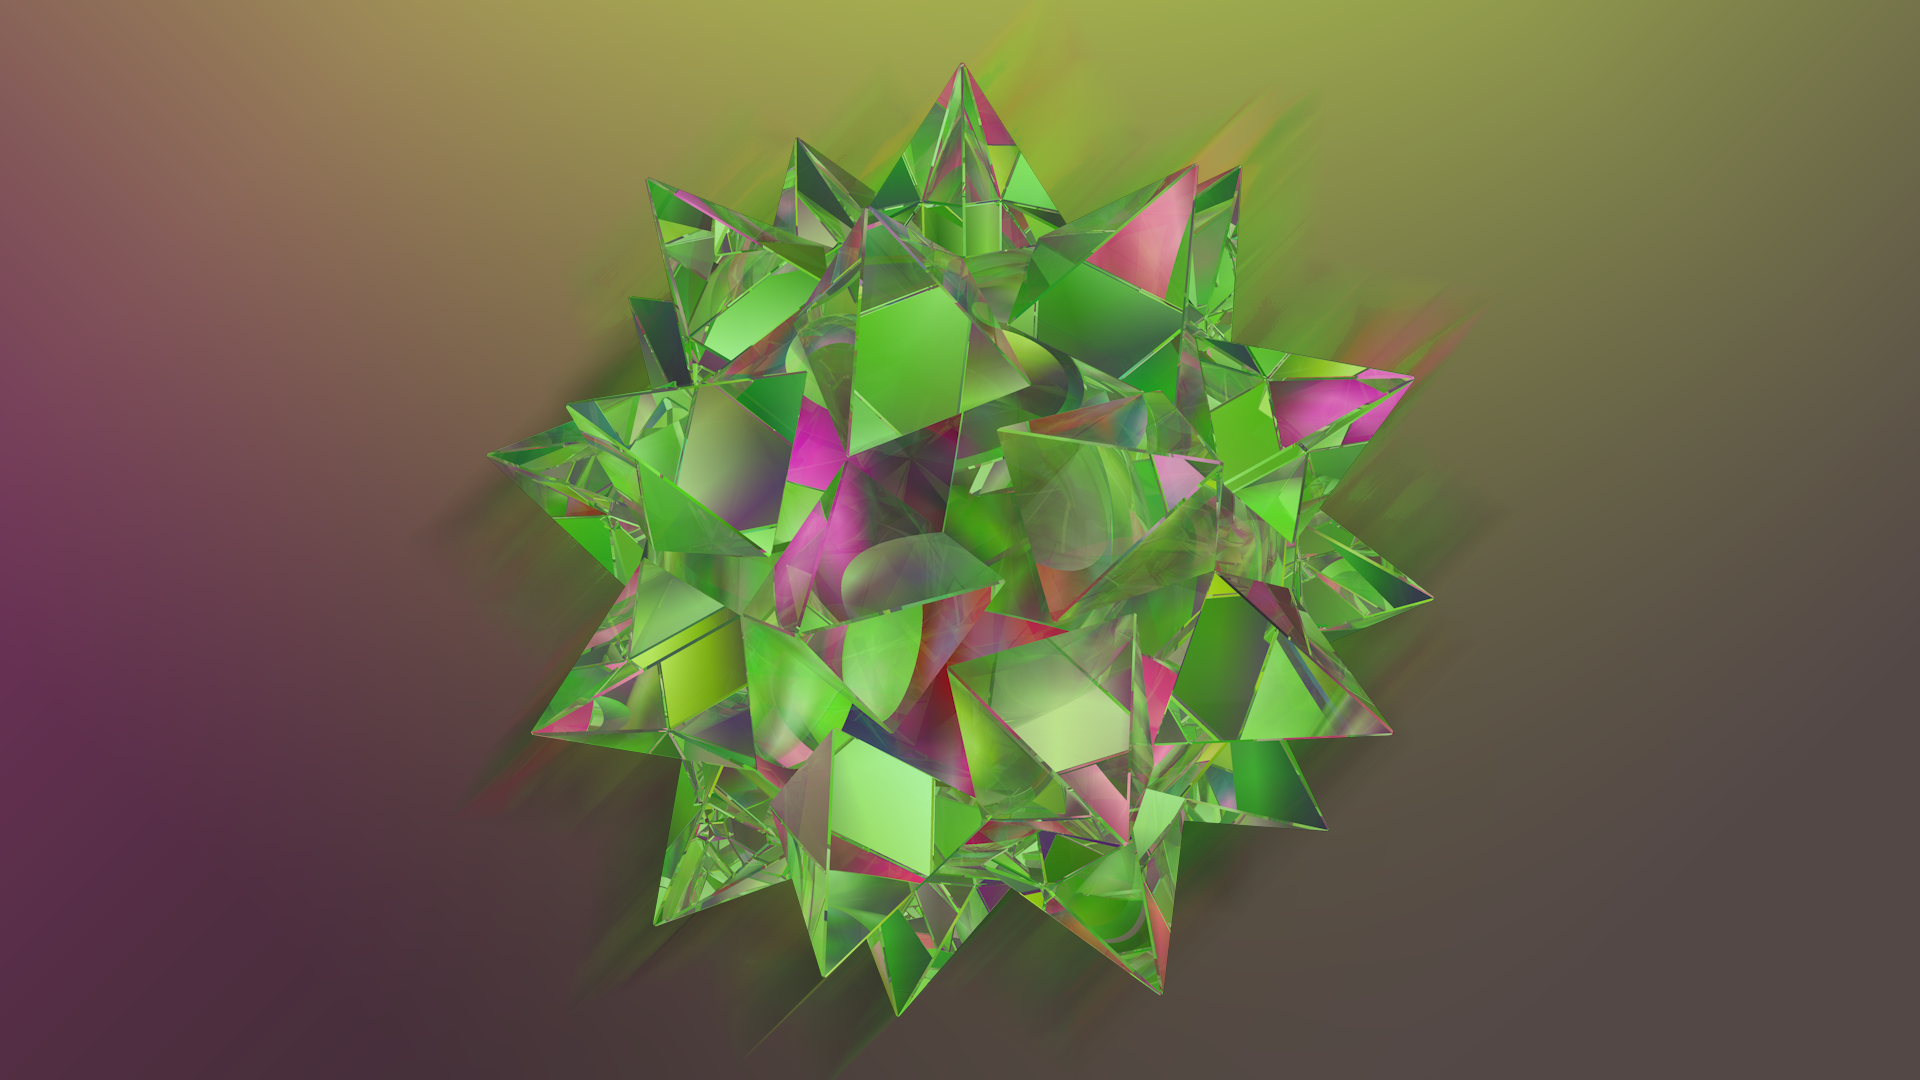 Abstract Refraction: Spiky Ball